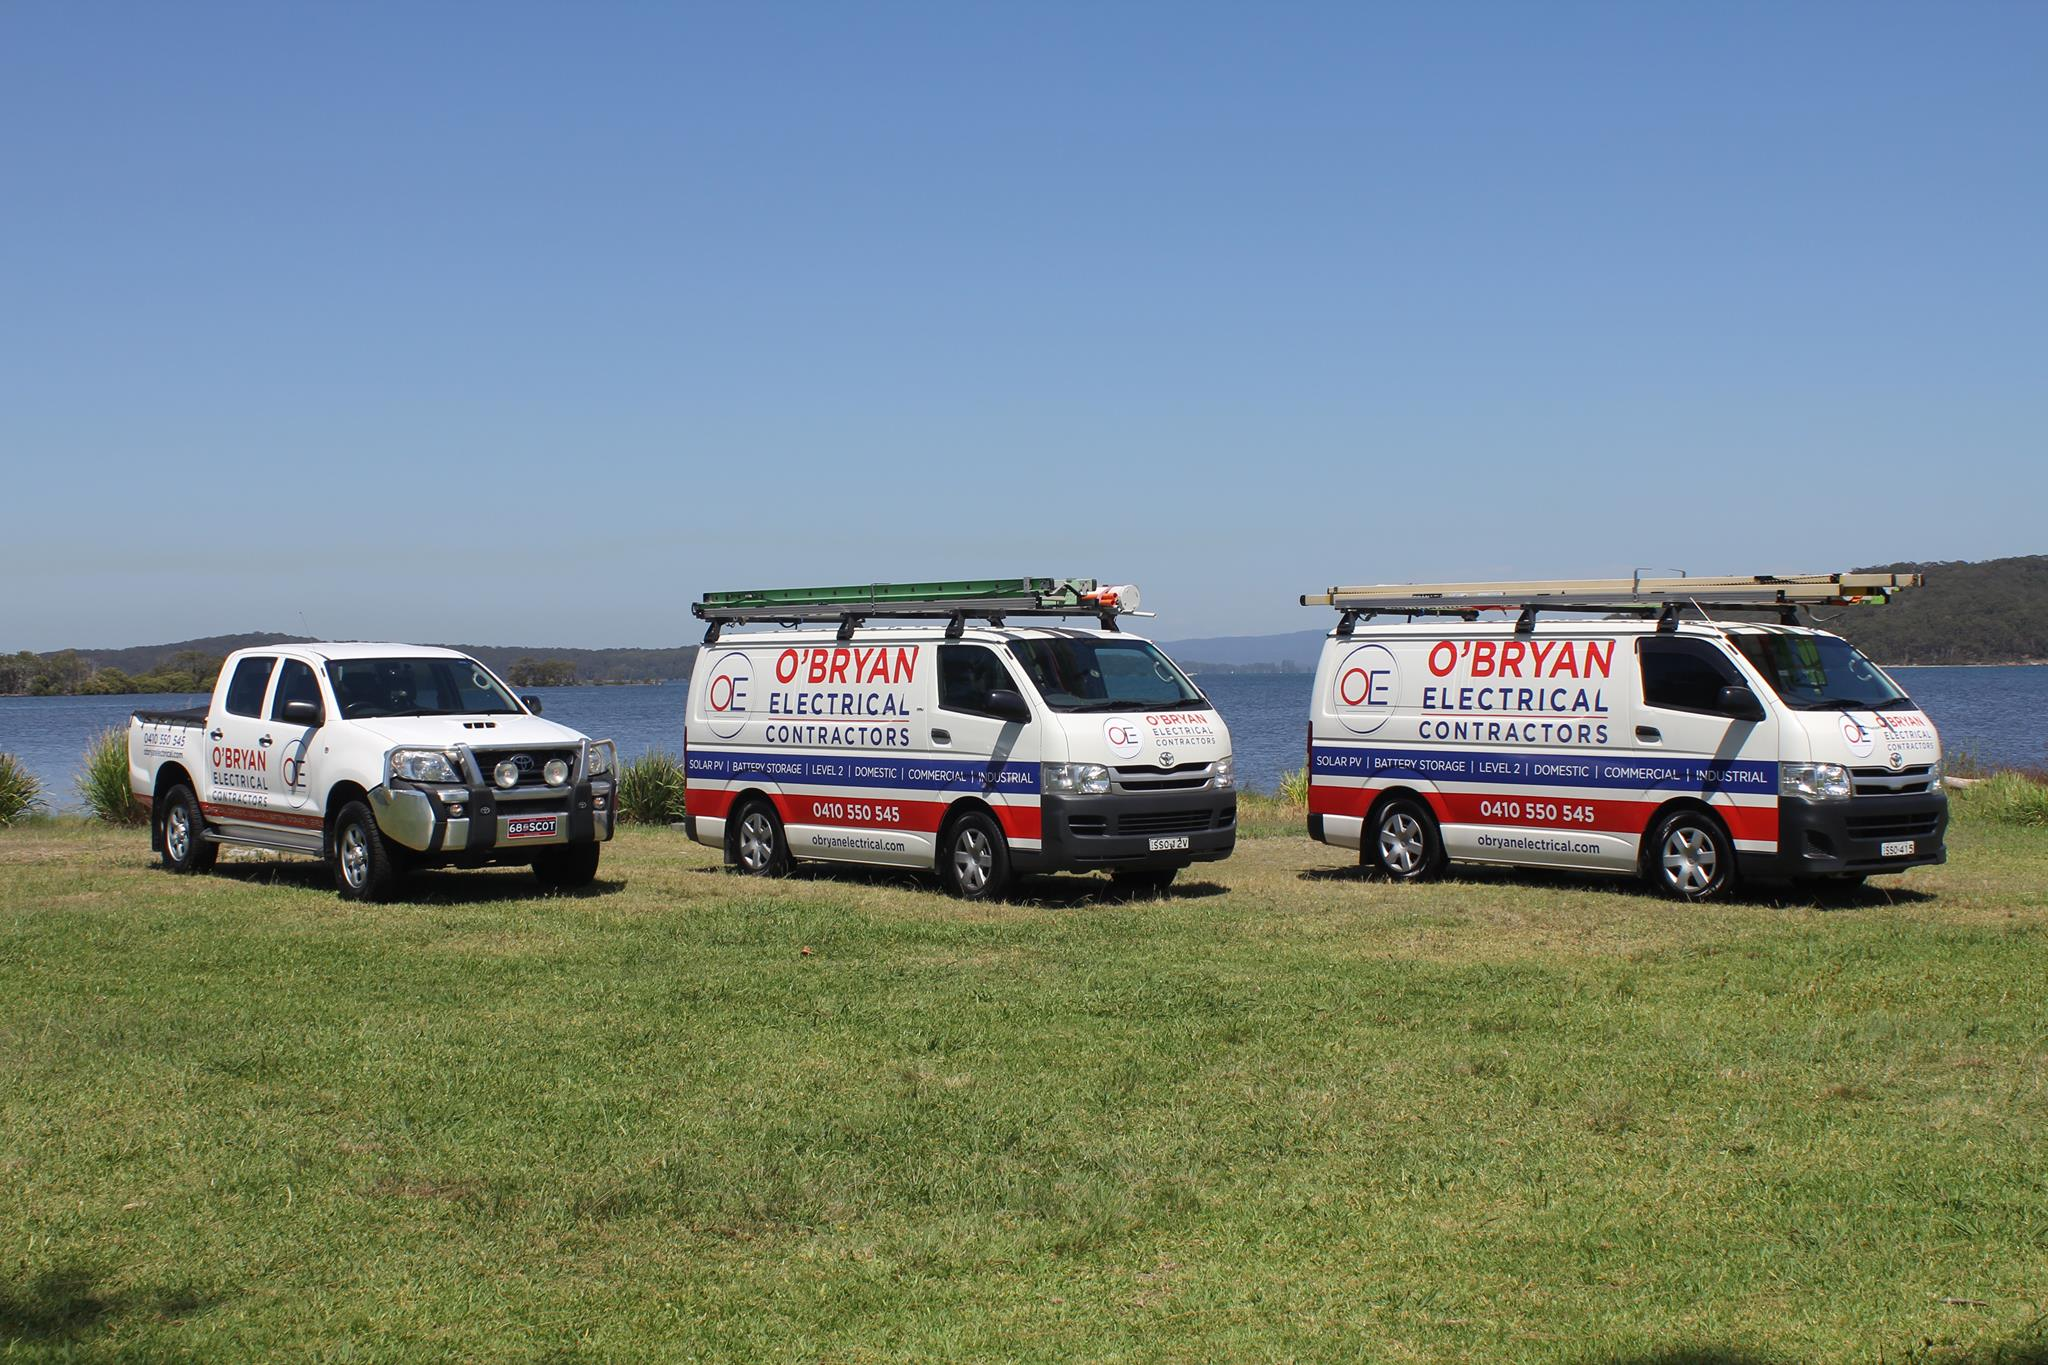 obryan electrical fleet think graphic communication-vehicle wraps.jpg